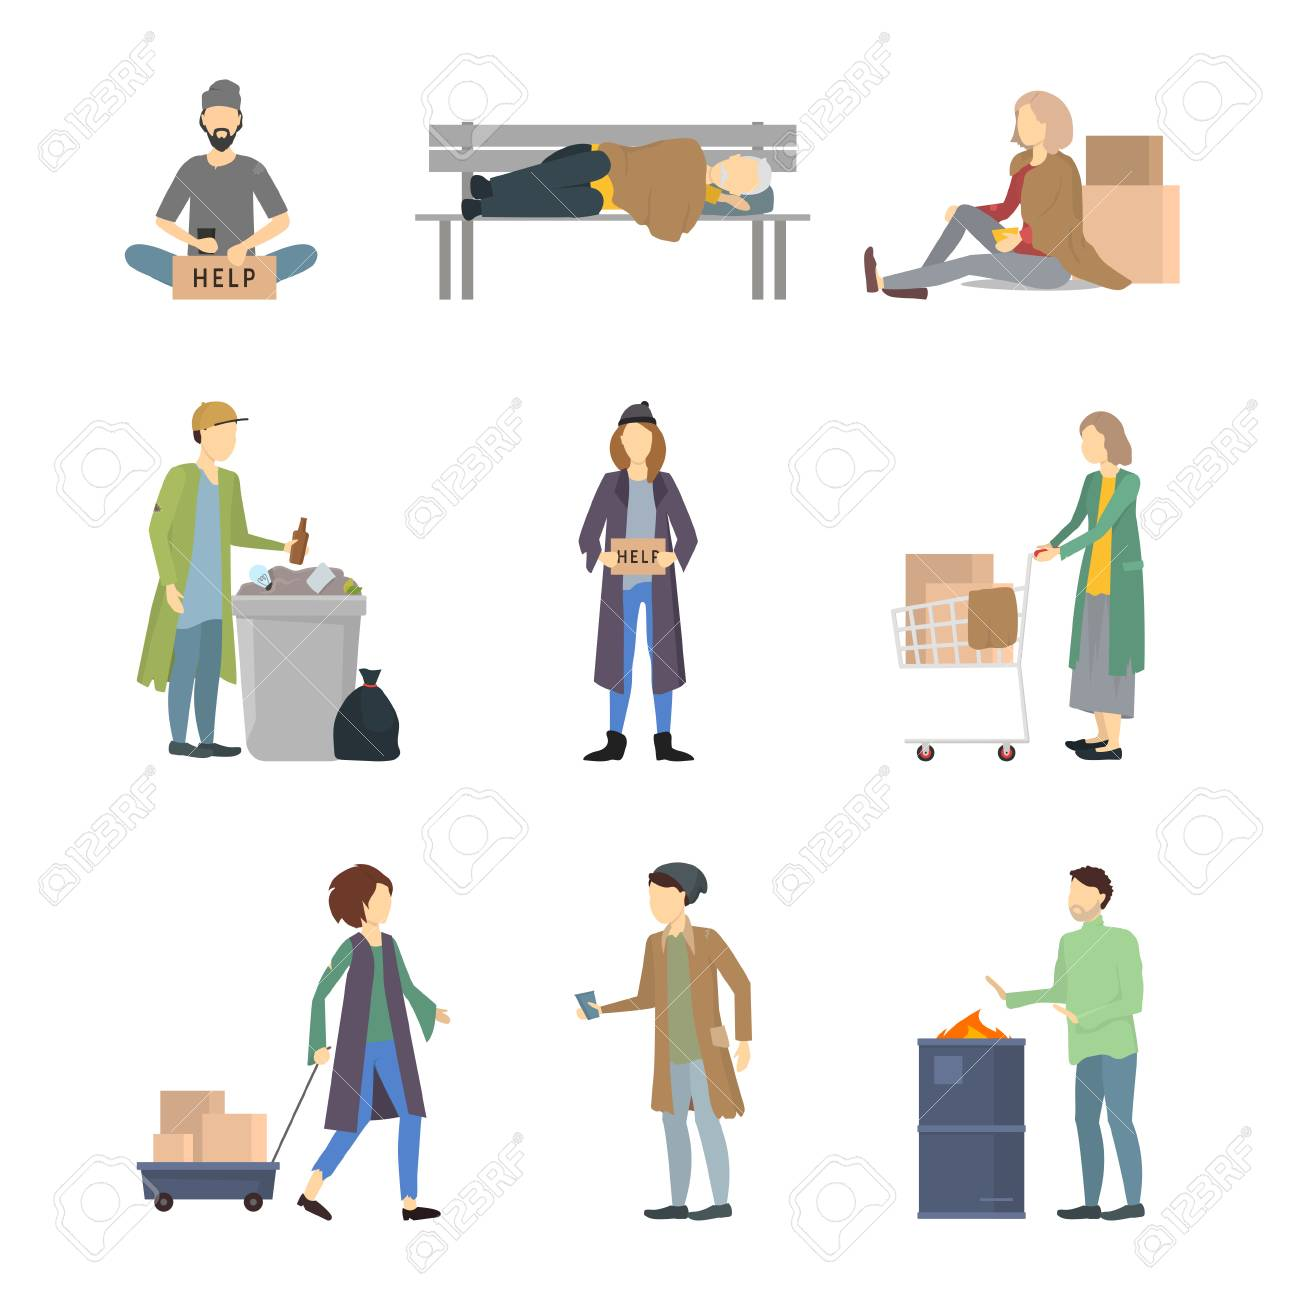 Cartoon Characters Homeless People Different Types Set Needy in Social Help Concept. Vector illustration of Poor and Dirty Person - 124635628